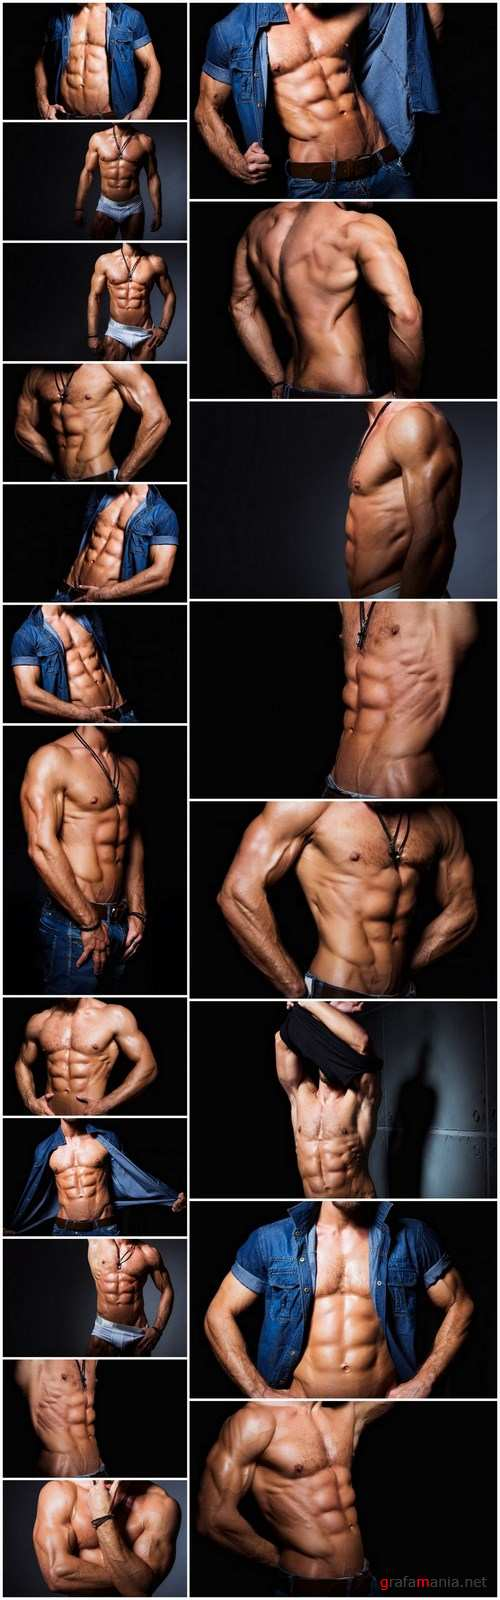 Muscular and sexy torso of young man having perfect abs - 20xUHQ JPEG Photo Stock